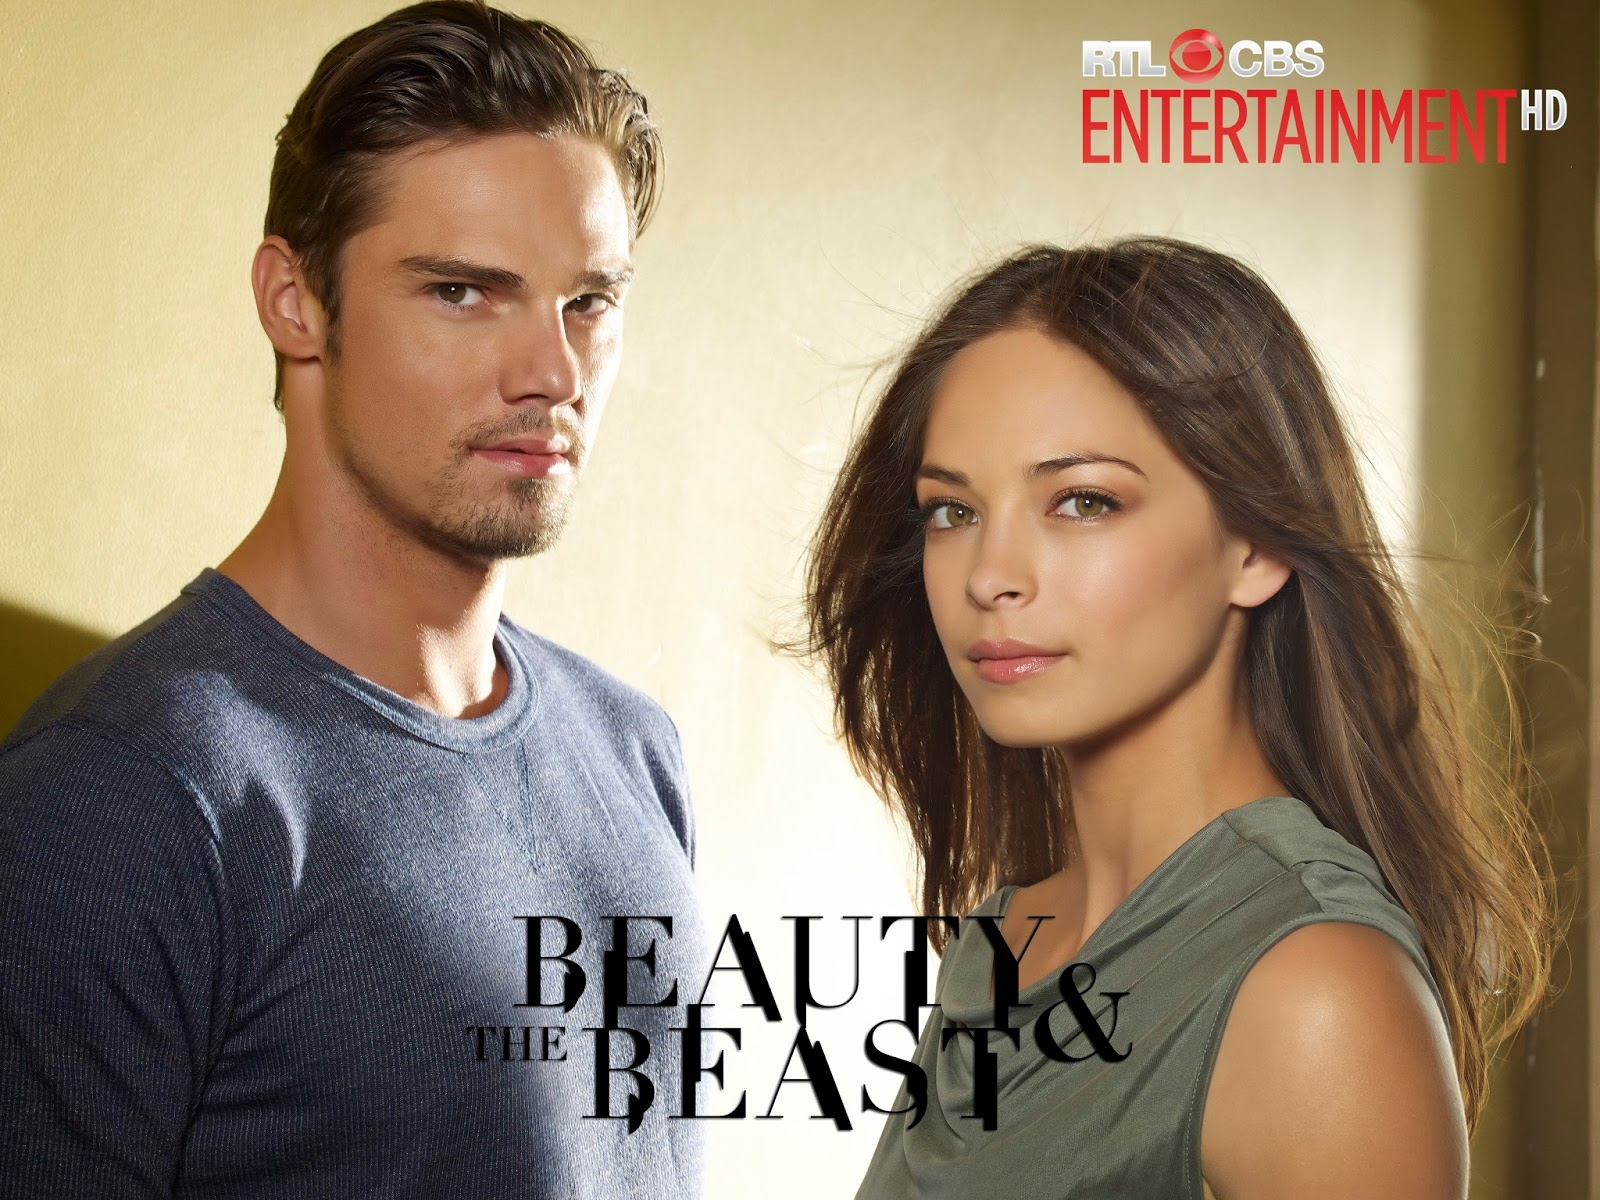 BEAUTY AND THE BEAST Returns With Its Second Season First And Exclusive On RTL CBS Entertainment HD February 18 900pm Singapore Time